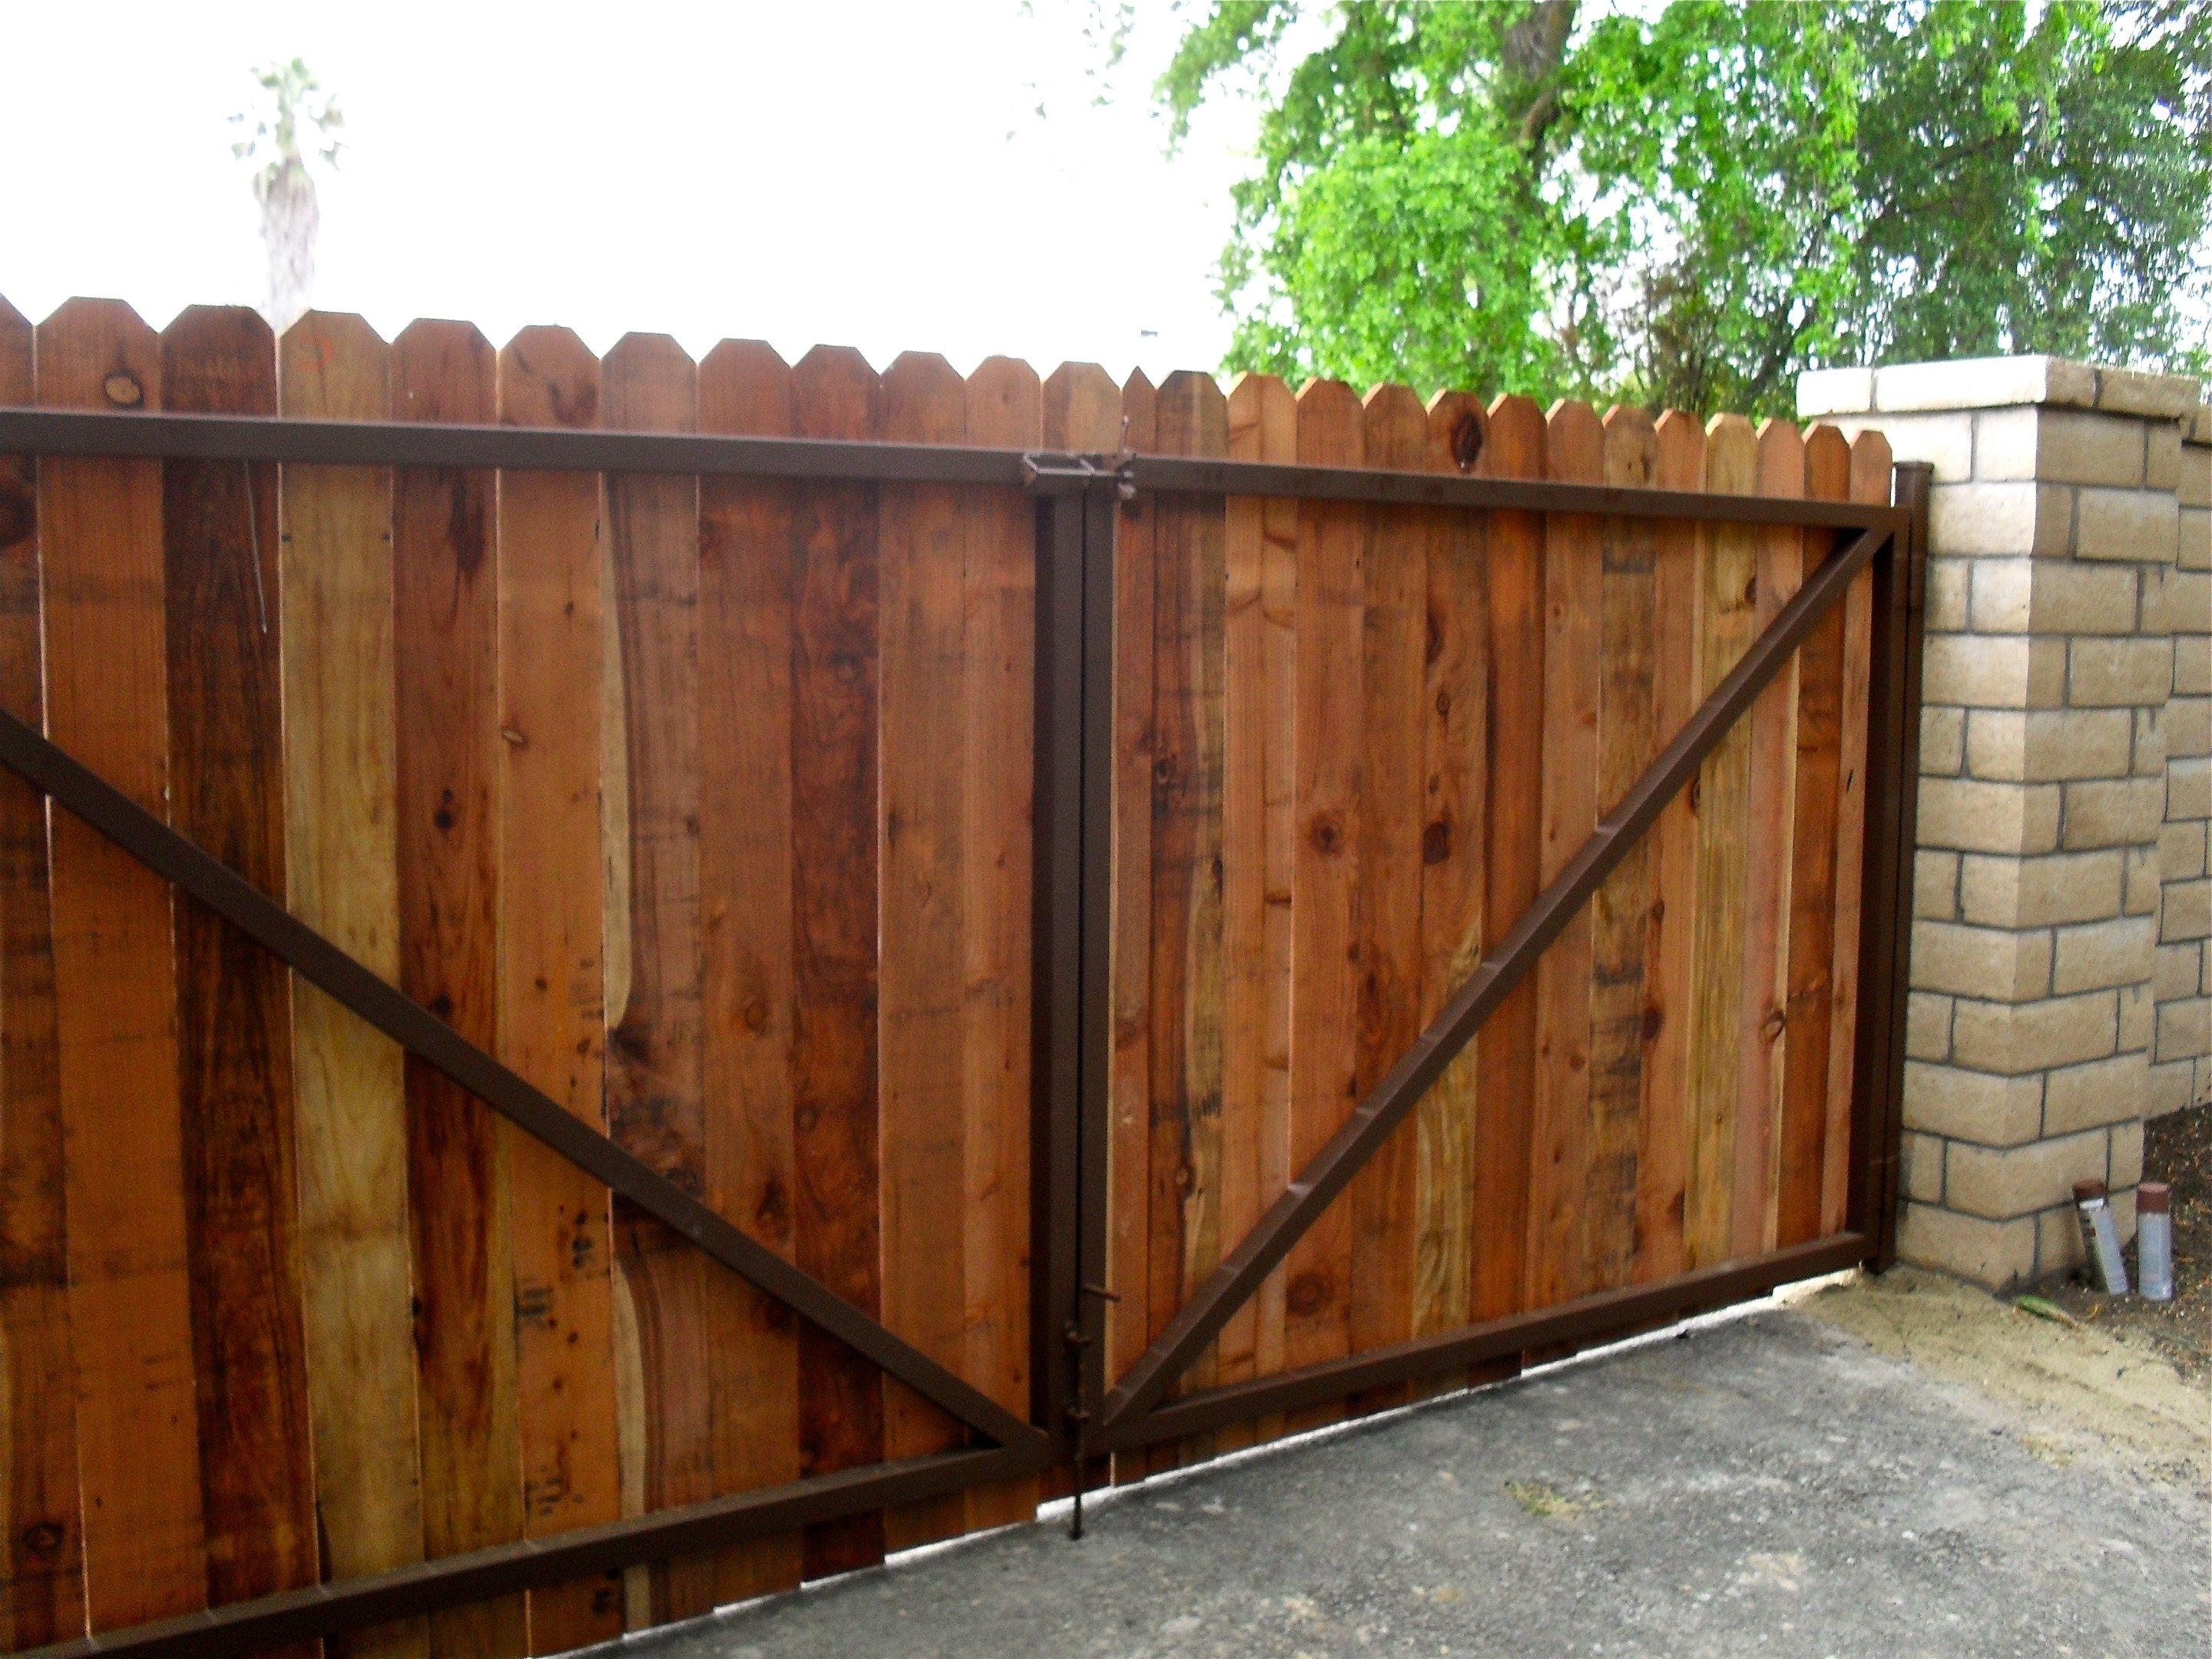 Gate Rustic Outdoor Design With Wooden Gate Designs Funkyg Within Wooden Driveway Gate Designs Woode Wood Fence Design Wood Gates Driveway Fence Gate Design